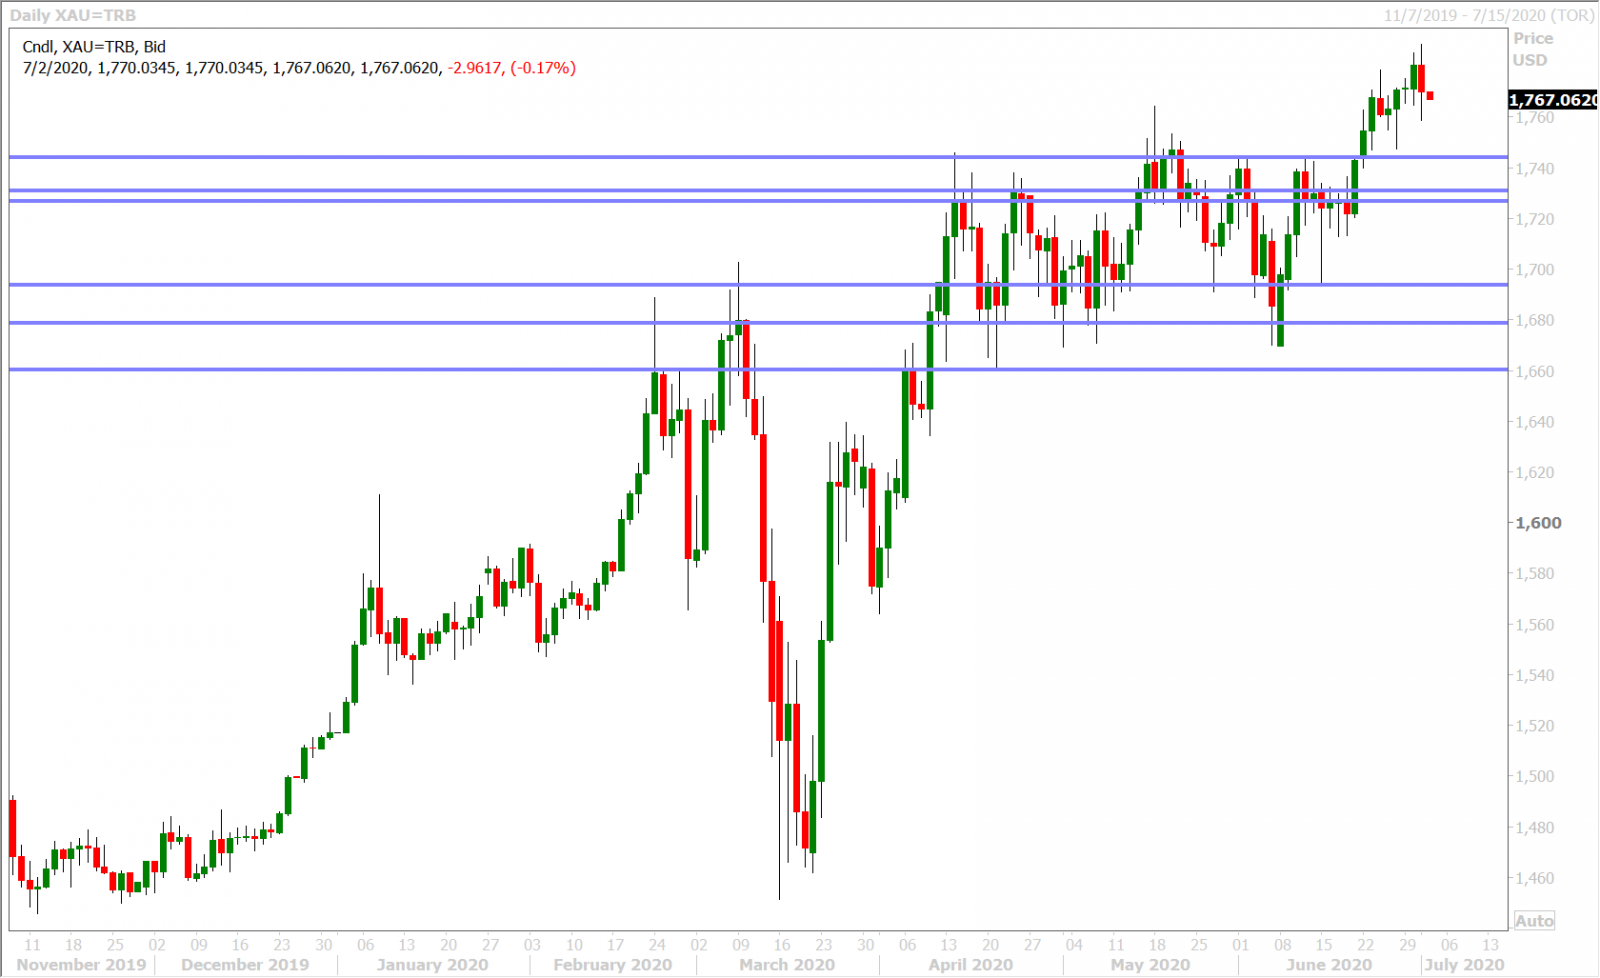 SPOT GOLD DAILY